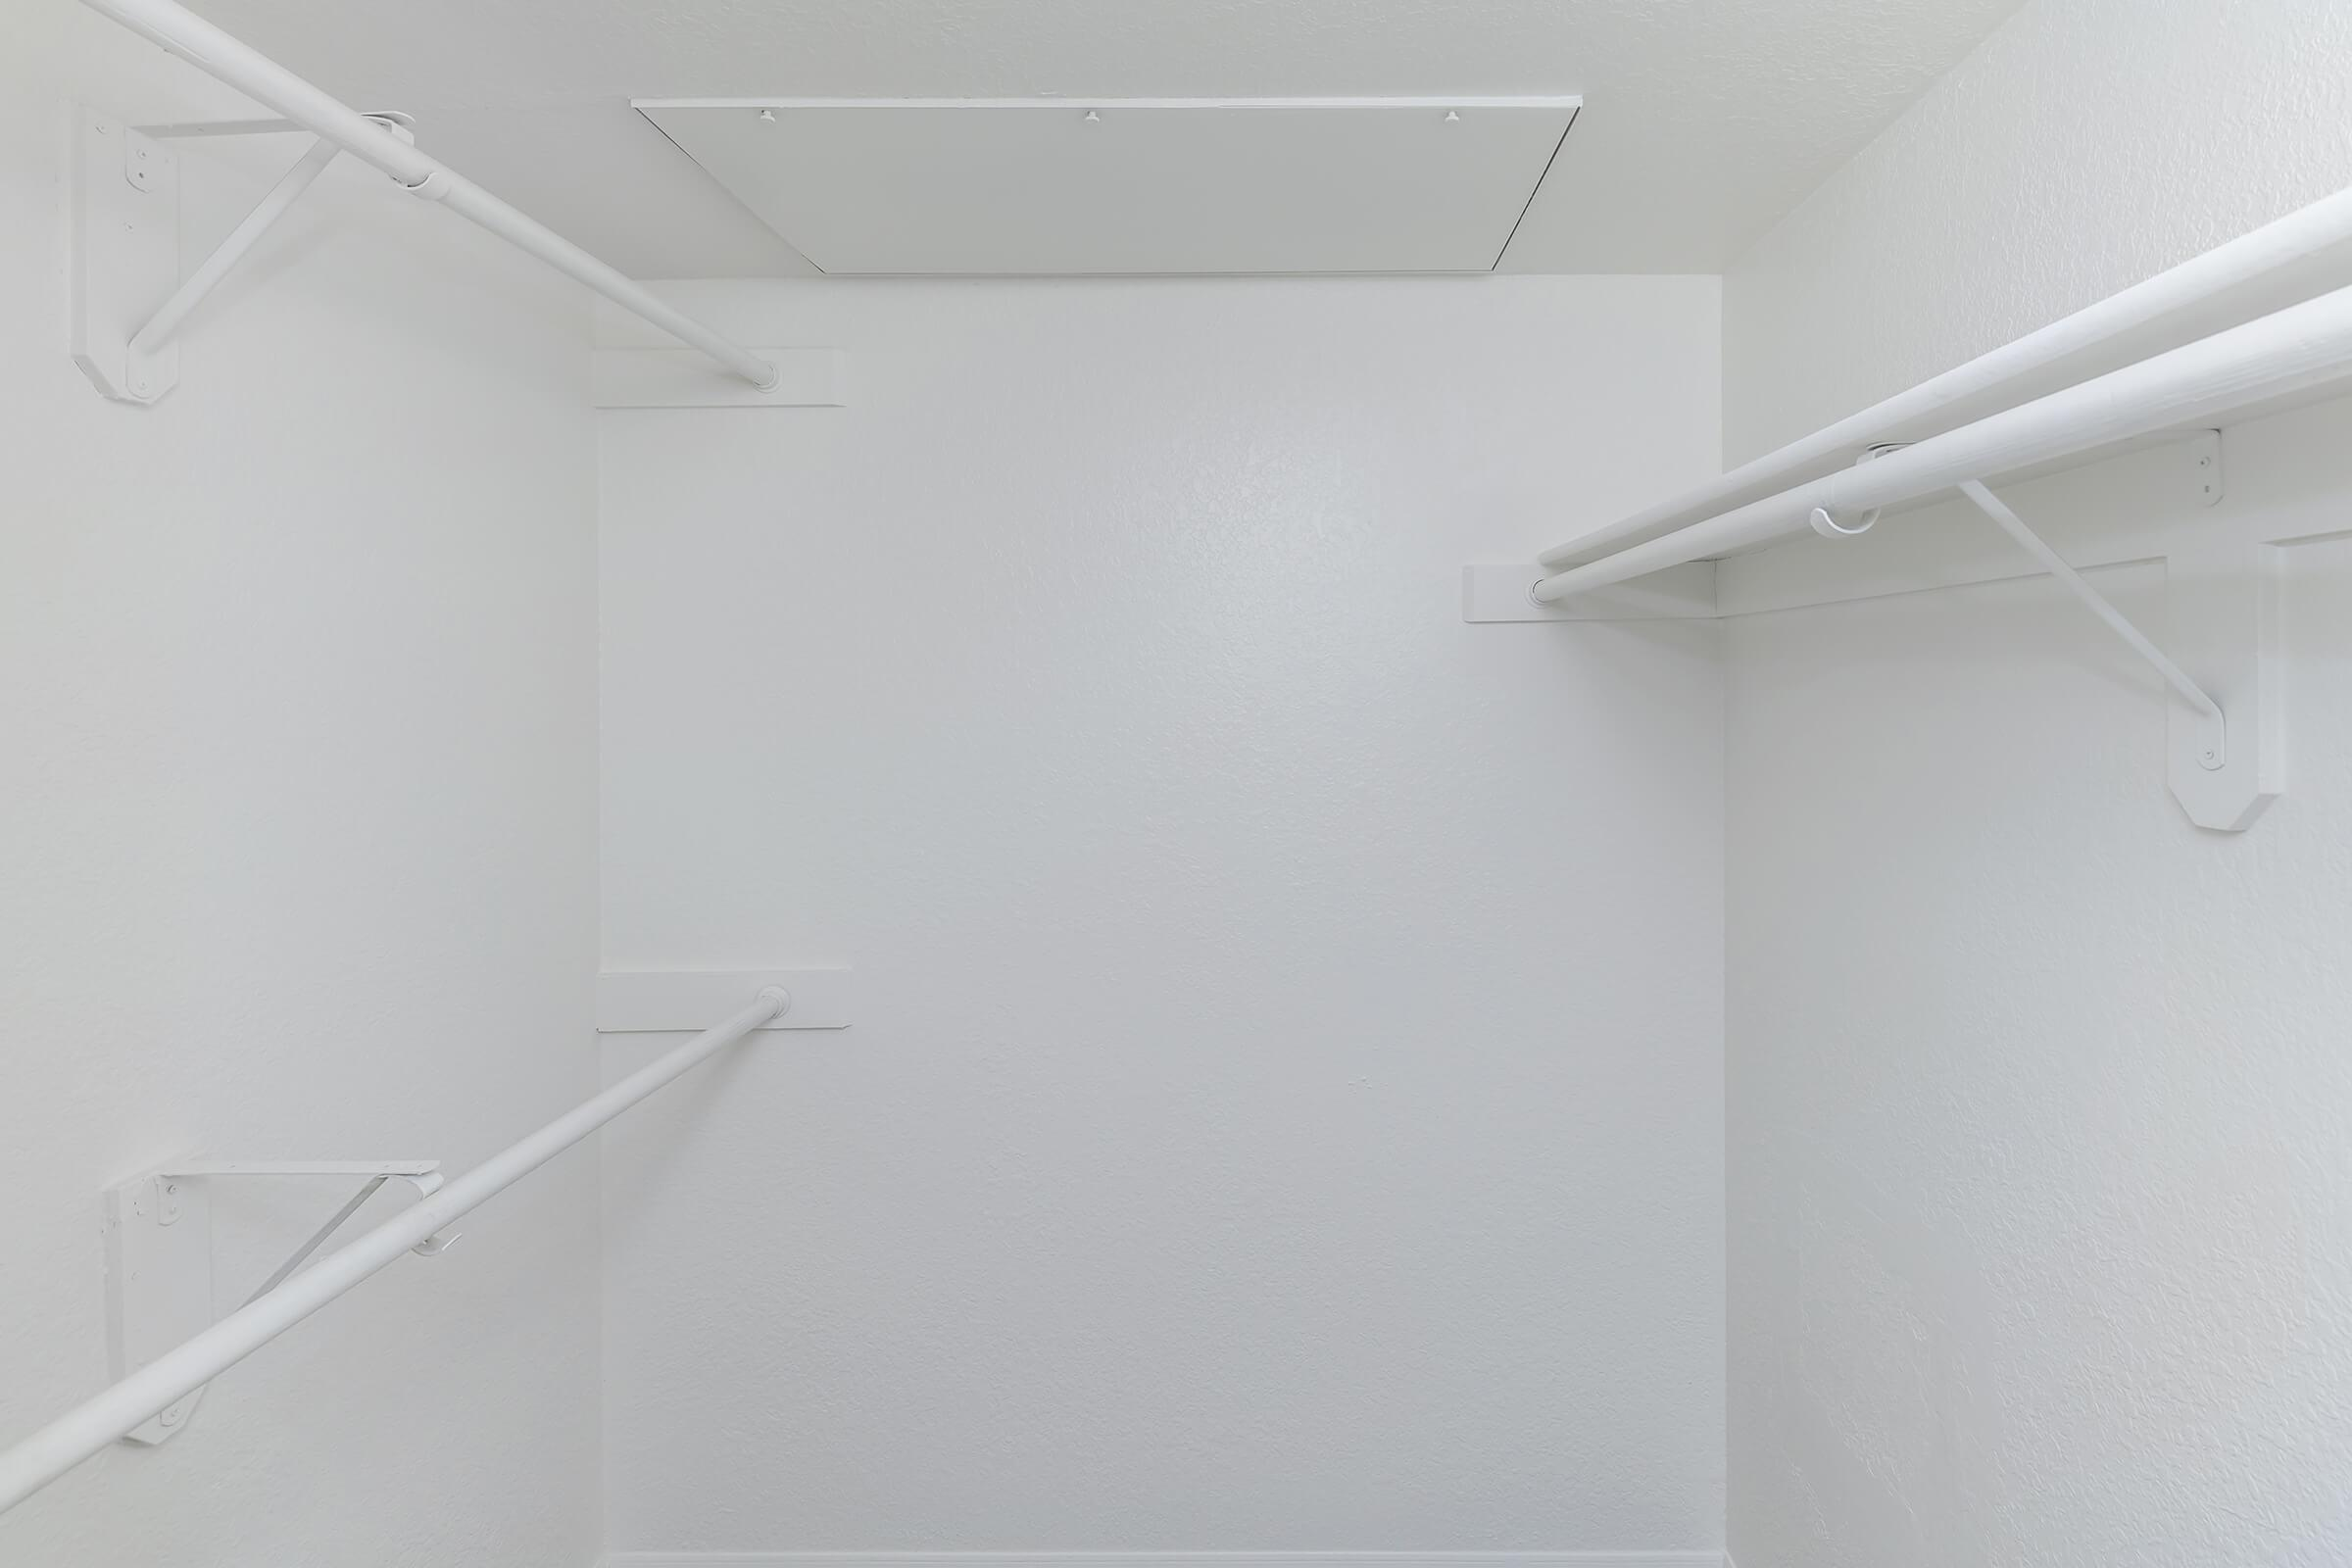 a white airplane hanging from the ceiling